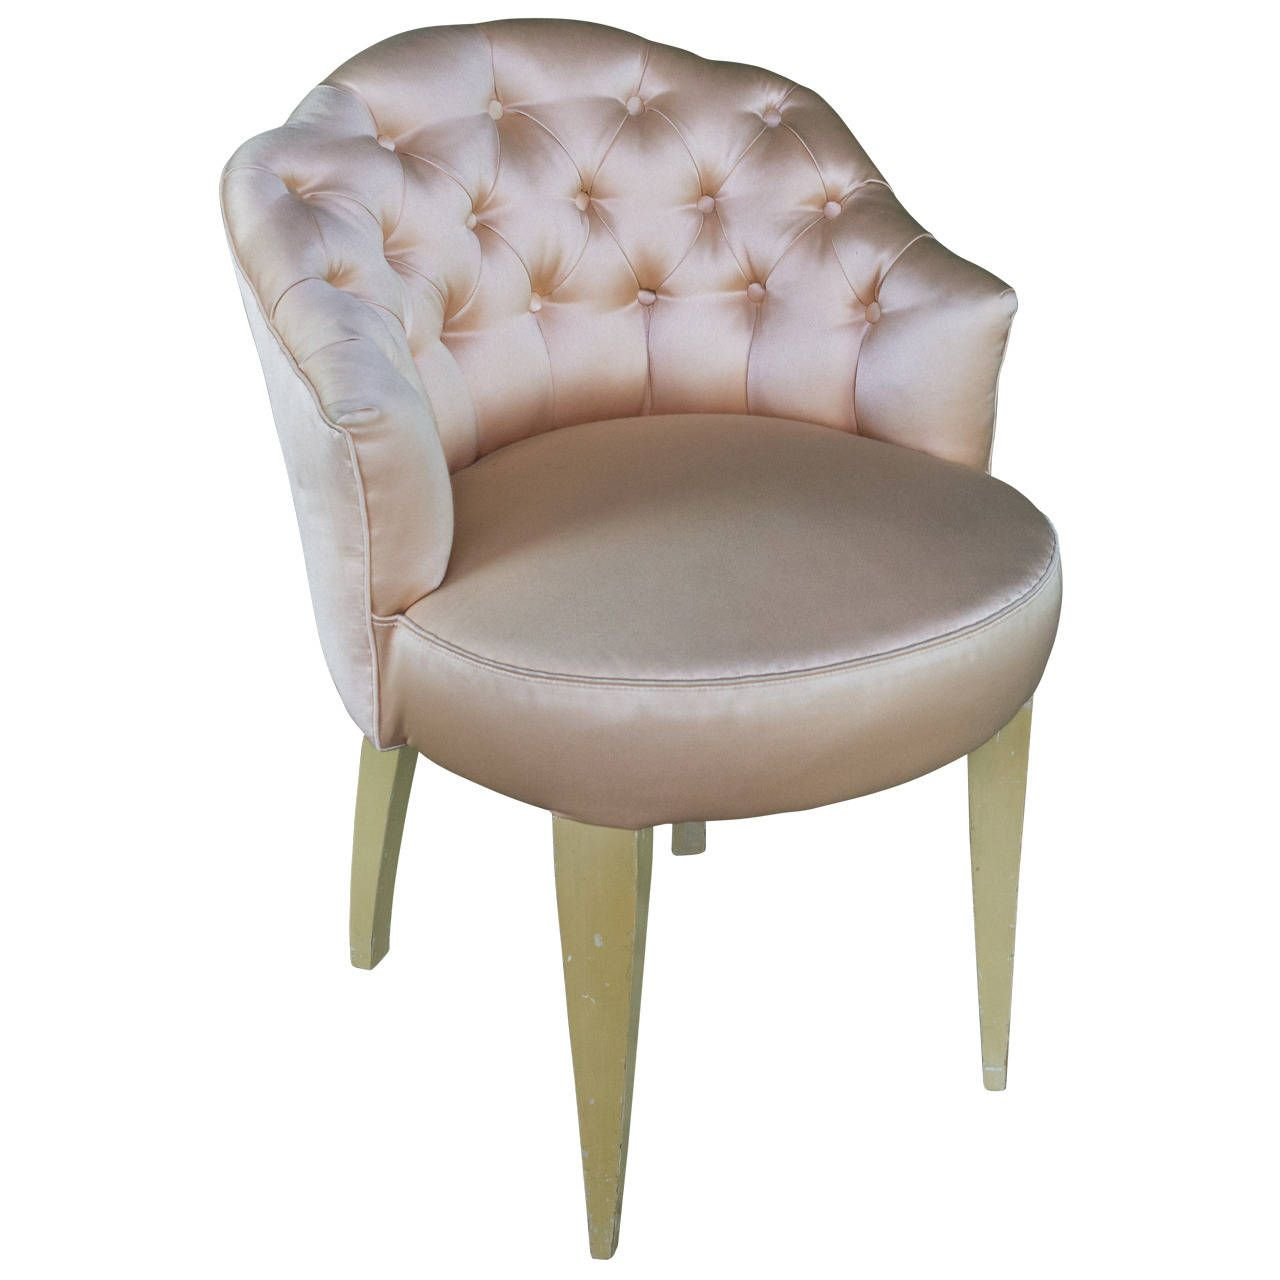 Surprising 20Th Century French Tufted Back Vanity Stool Decor Machost Co Dining Chair Design Ideas Machostcouk